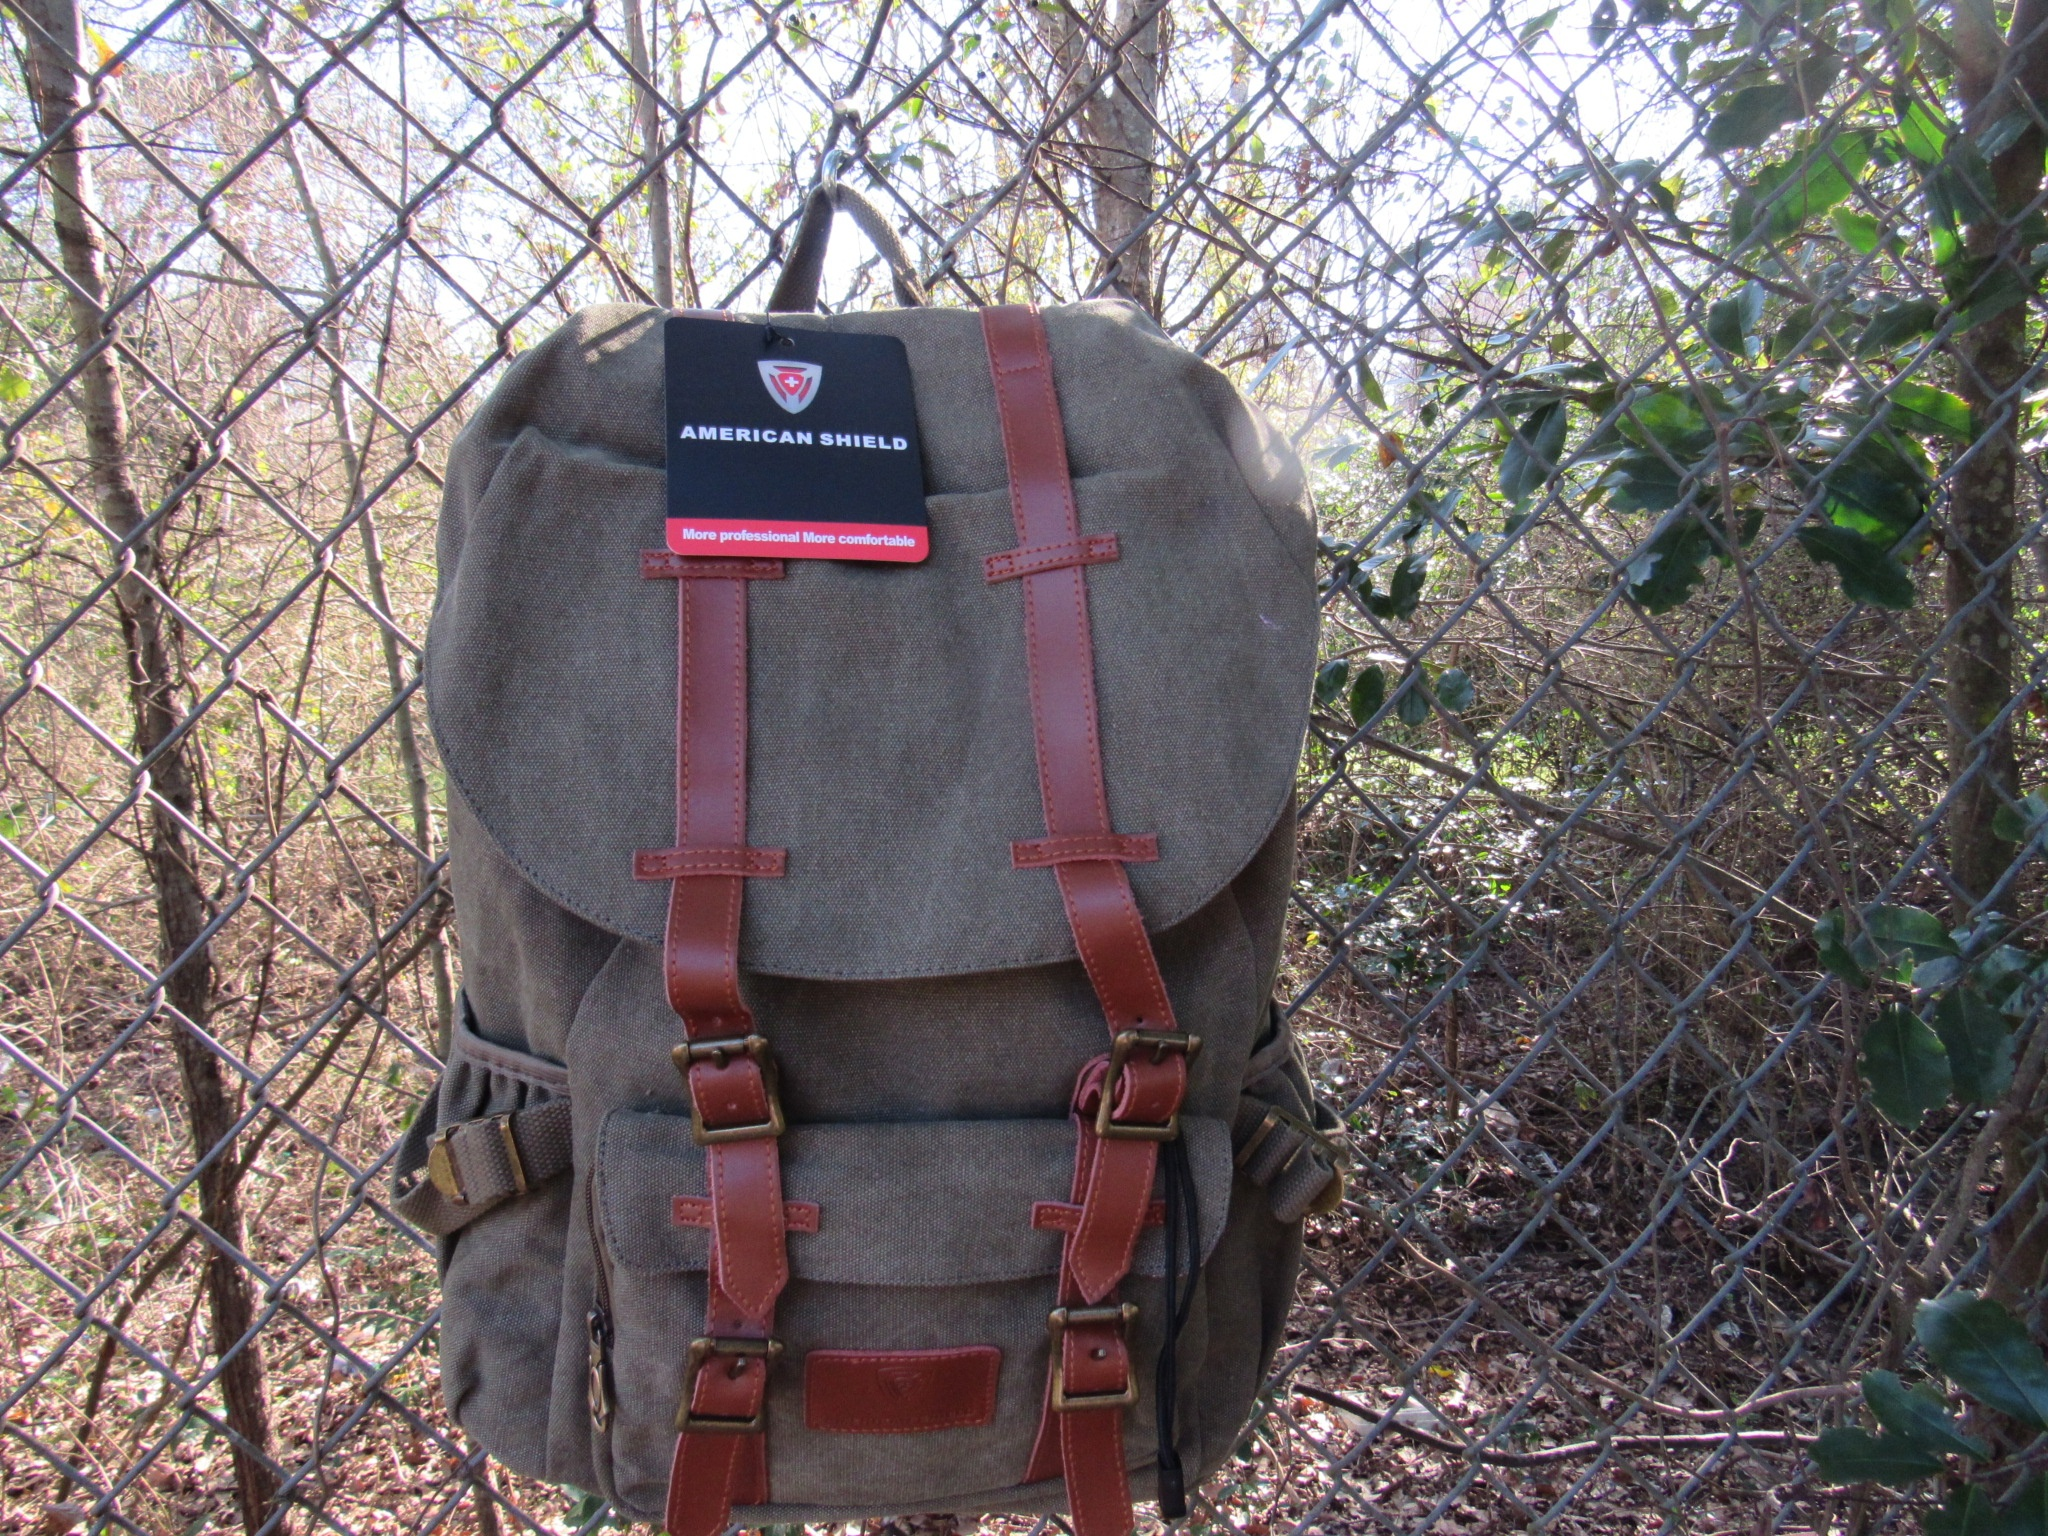 The American Shield Granite 25 series backpack is a hikers dream